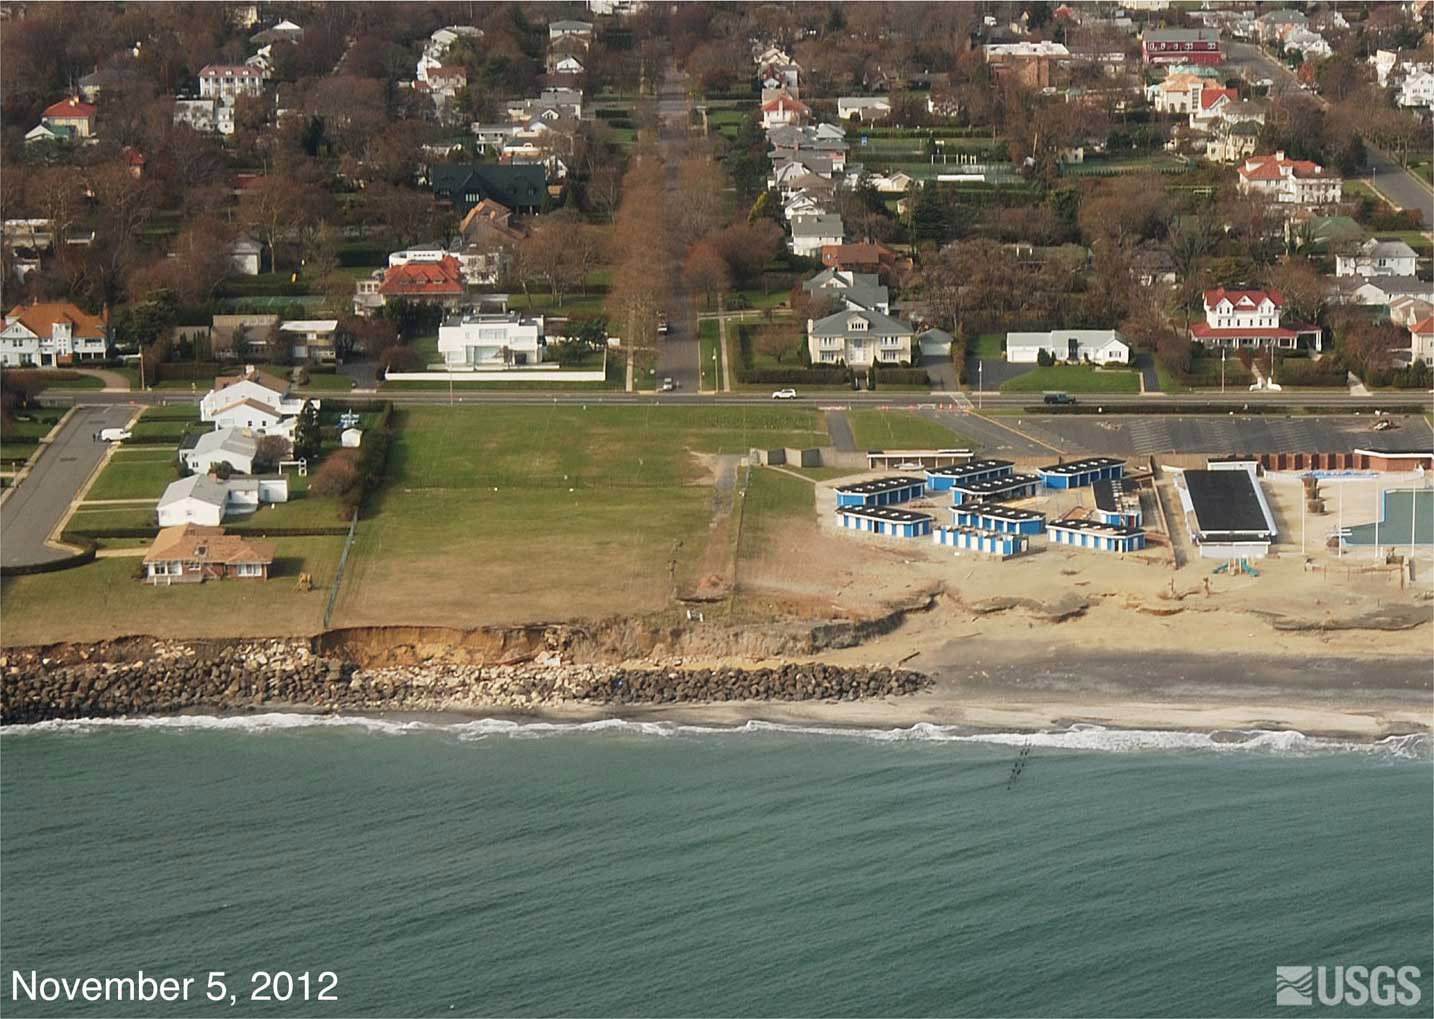 After Hurricane Sandy, erosion of the low cliff indicates overtopping of the rock shore protection structures. The yellow arrow in each image points to the same feature. (USGS)